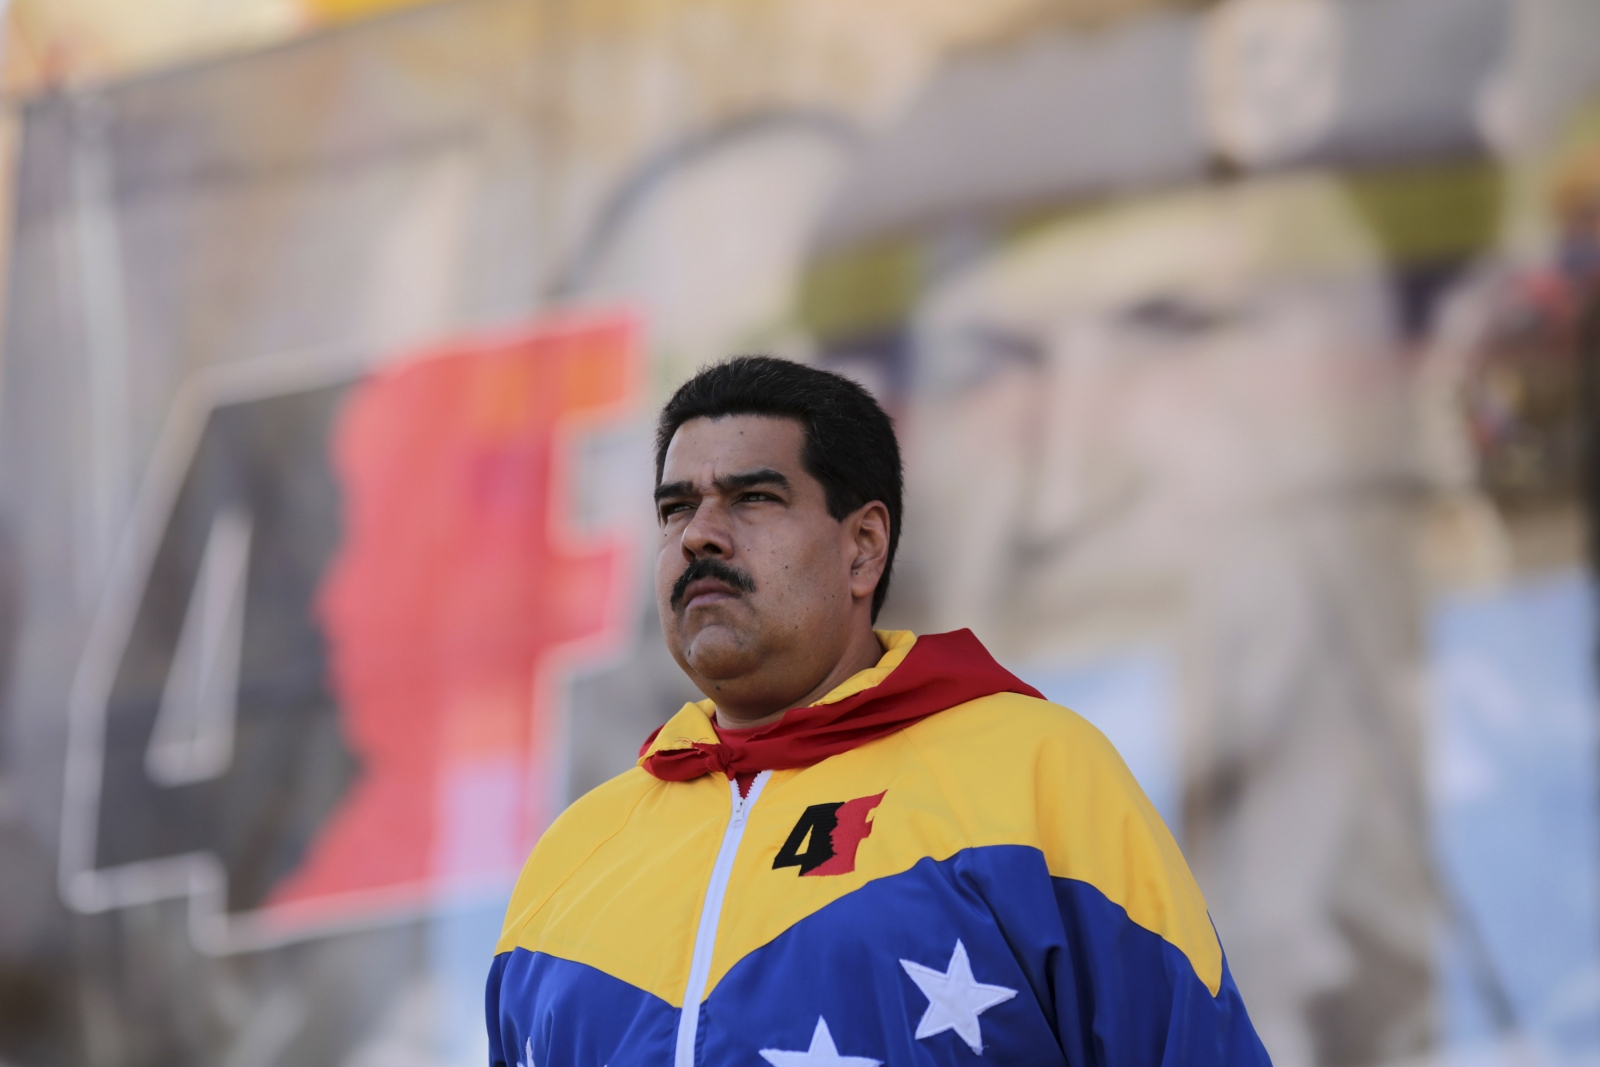 Venezuelan president Maduro alleges coup attempt by US